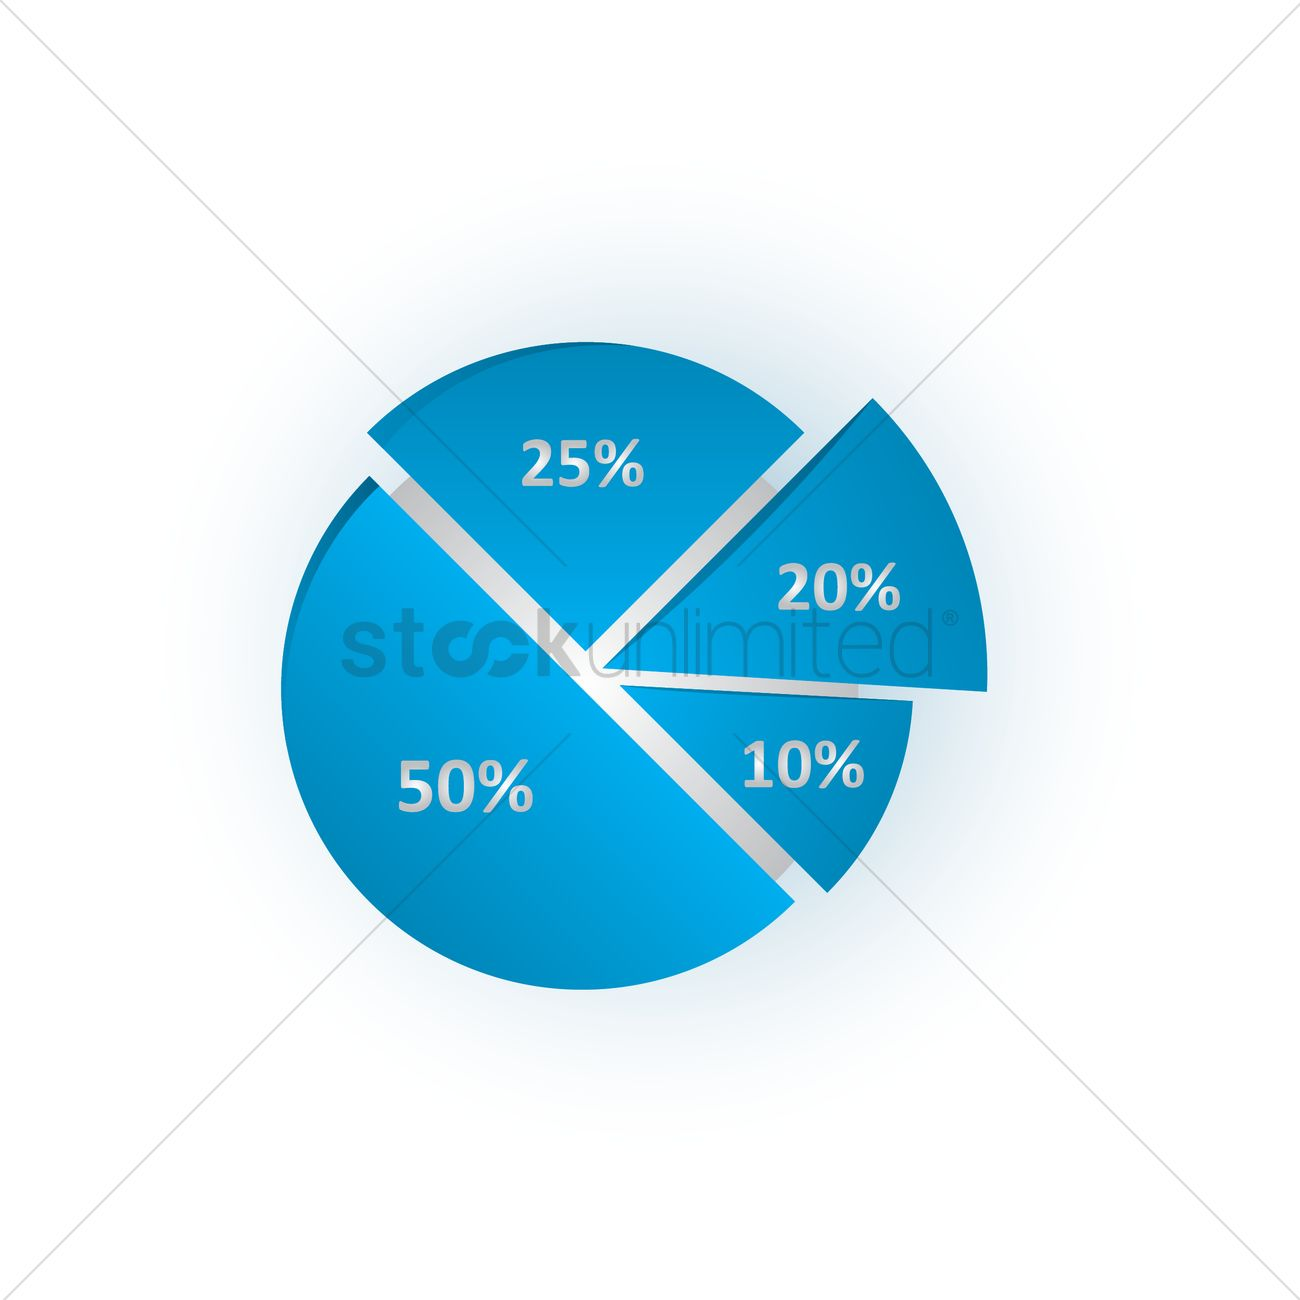 Pie chart vector image 1563787 stockunlimited pie chart vector graphic nvjuhfo Image collections